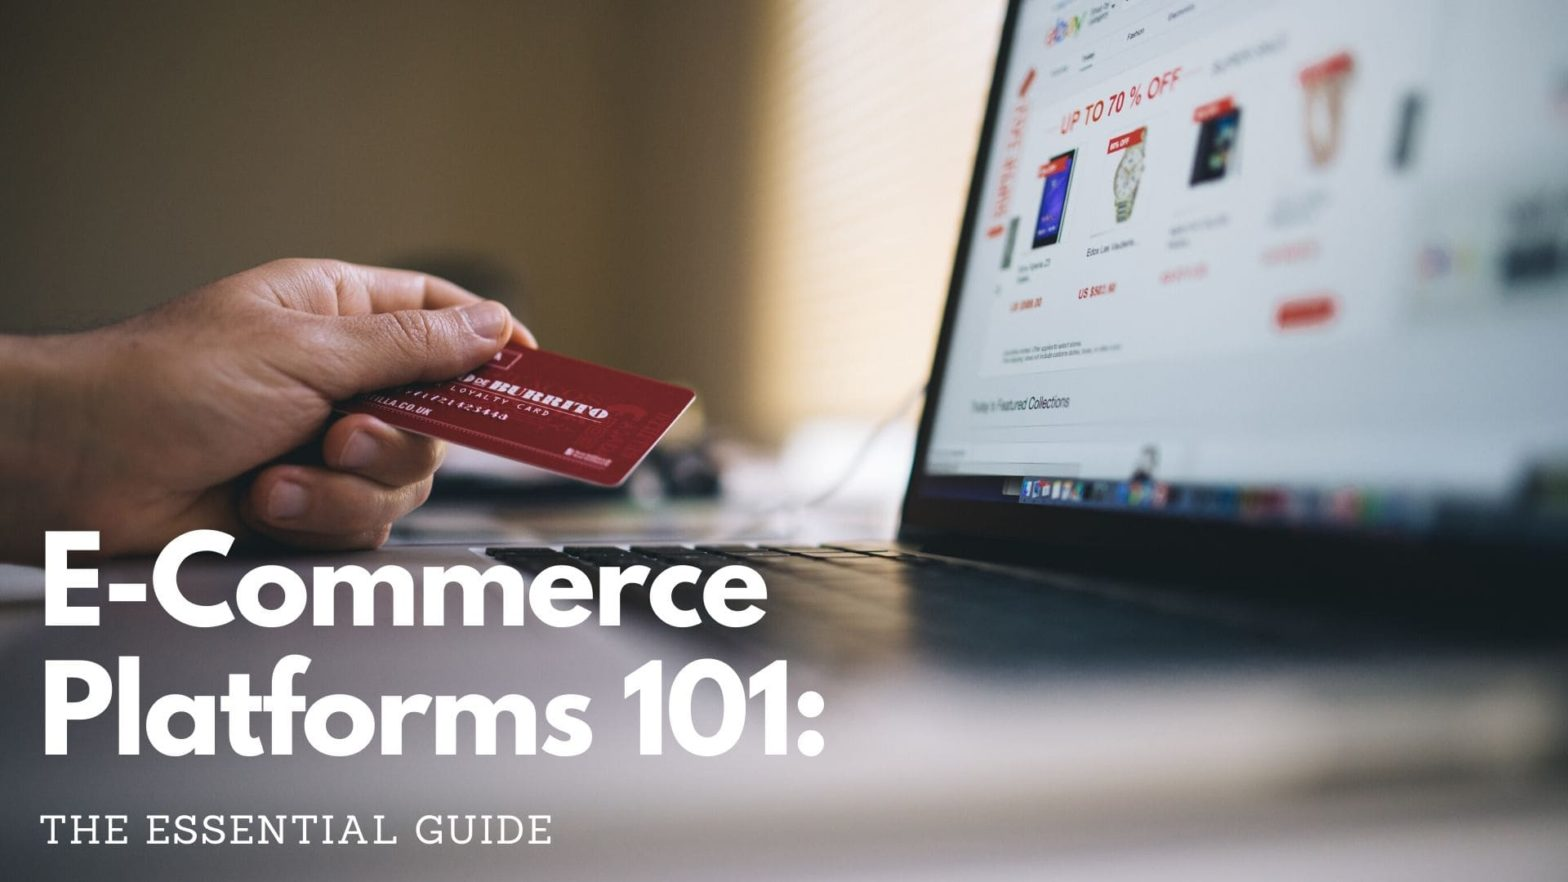 E-Commerce Platforms 101: The Essential Guide